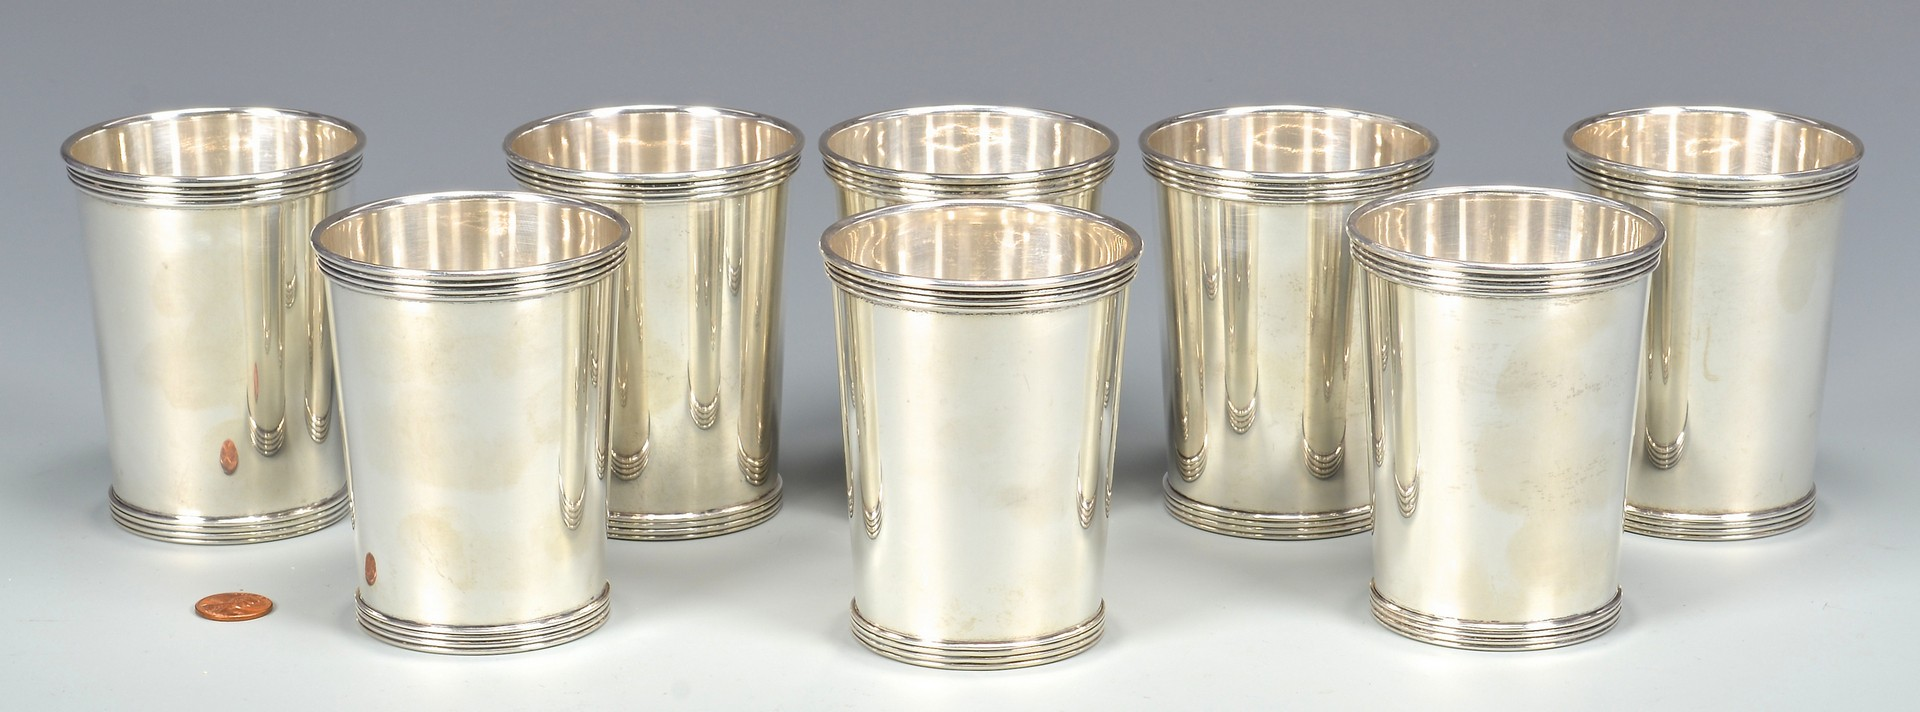 Lot 349: 8 International Sterling Julep Cups